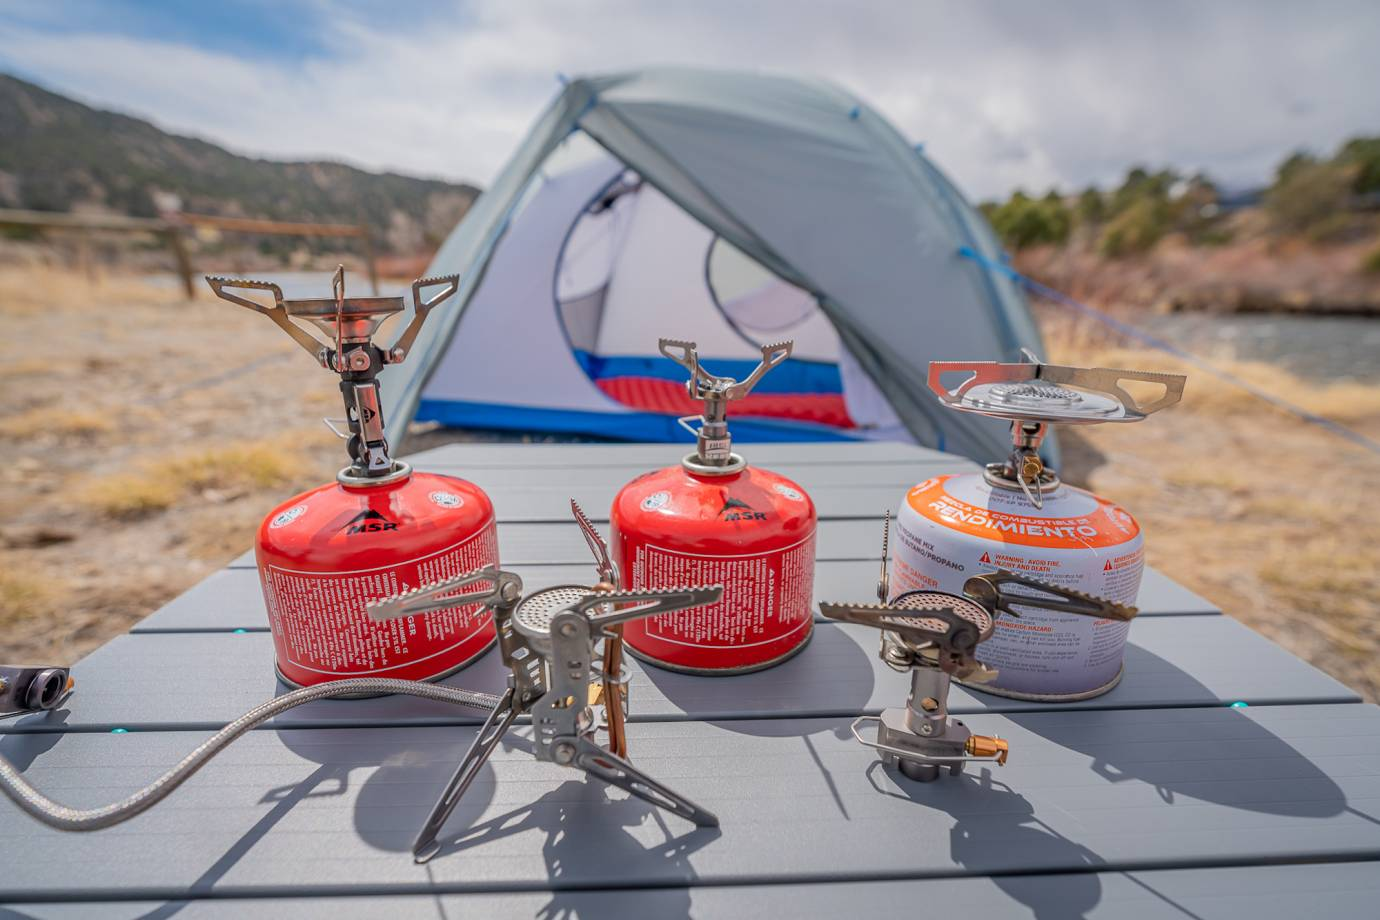 five different lightweight backpacking stoves with fuel canisters and a tent in the background